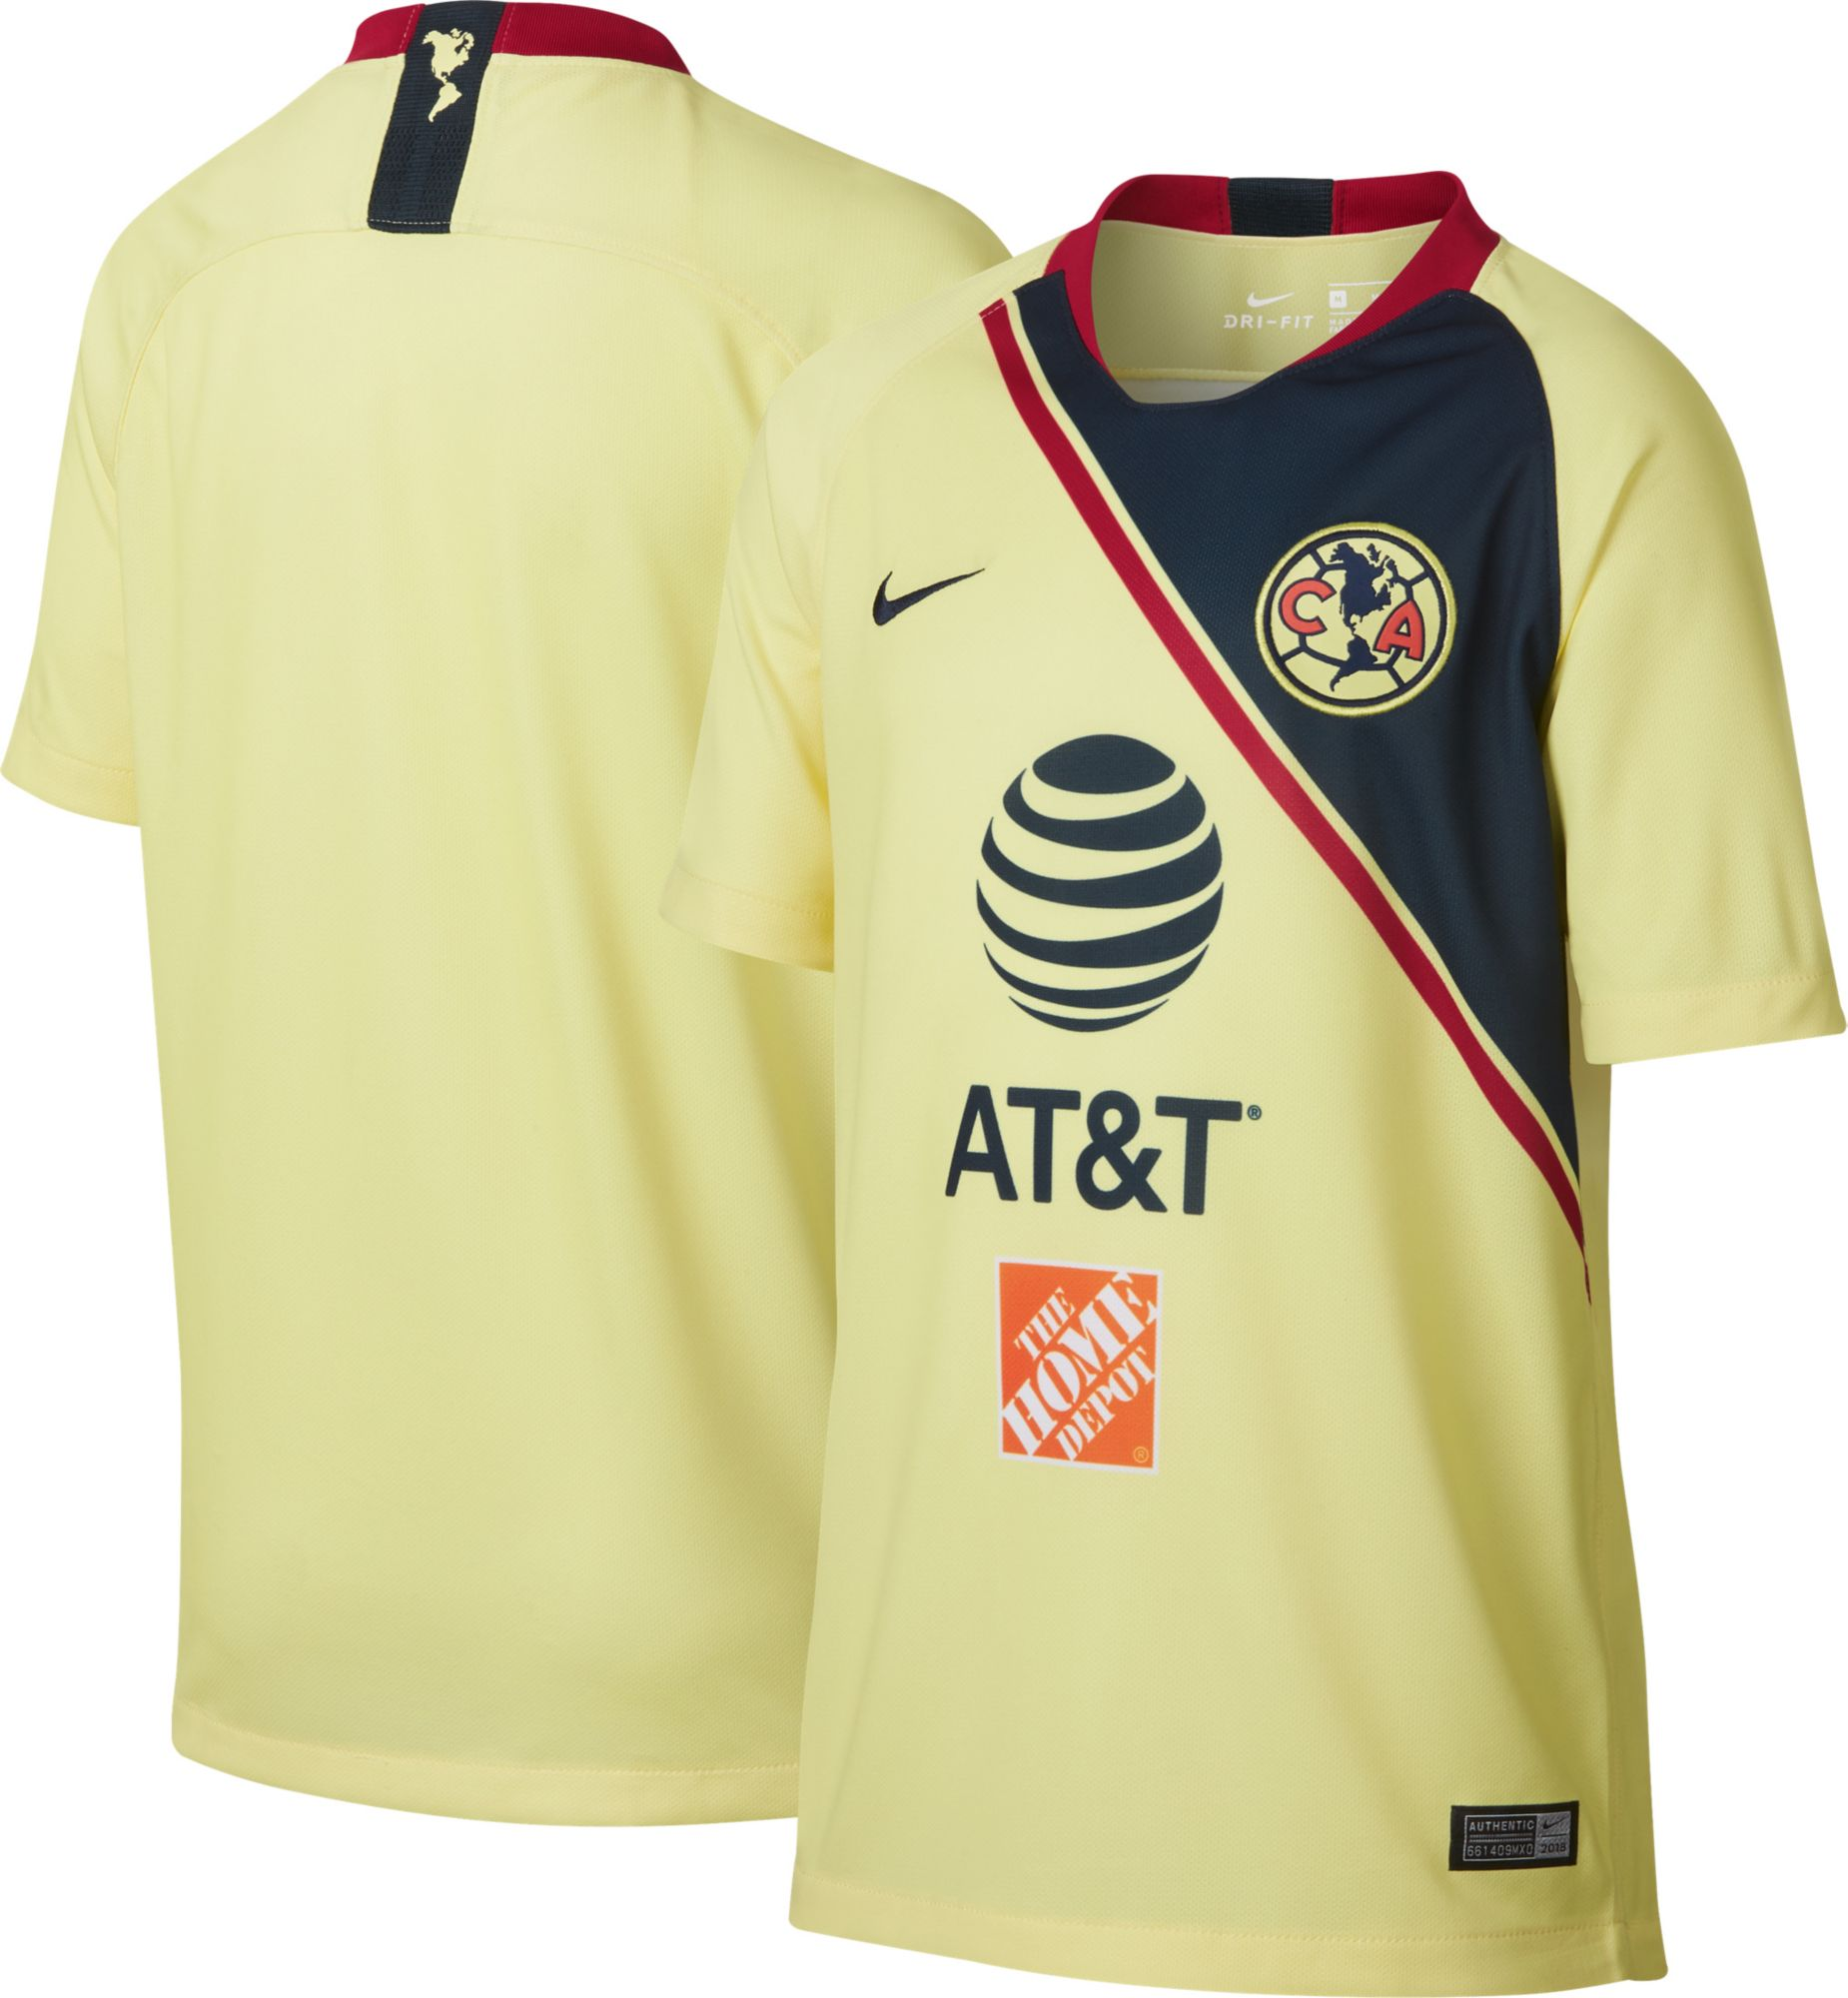 c52f74422 Nike Youth Club America 2018 Breathe Stadium Home Replica Jersey ...